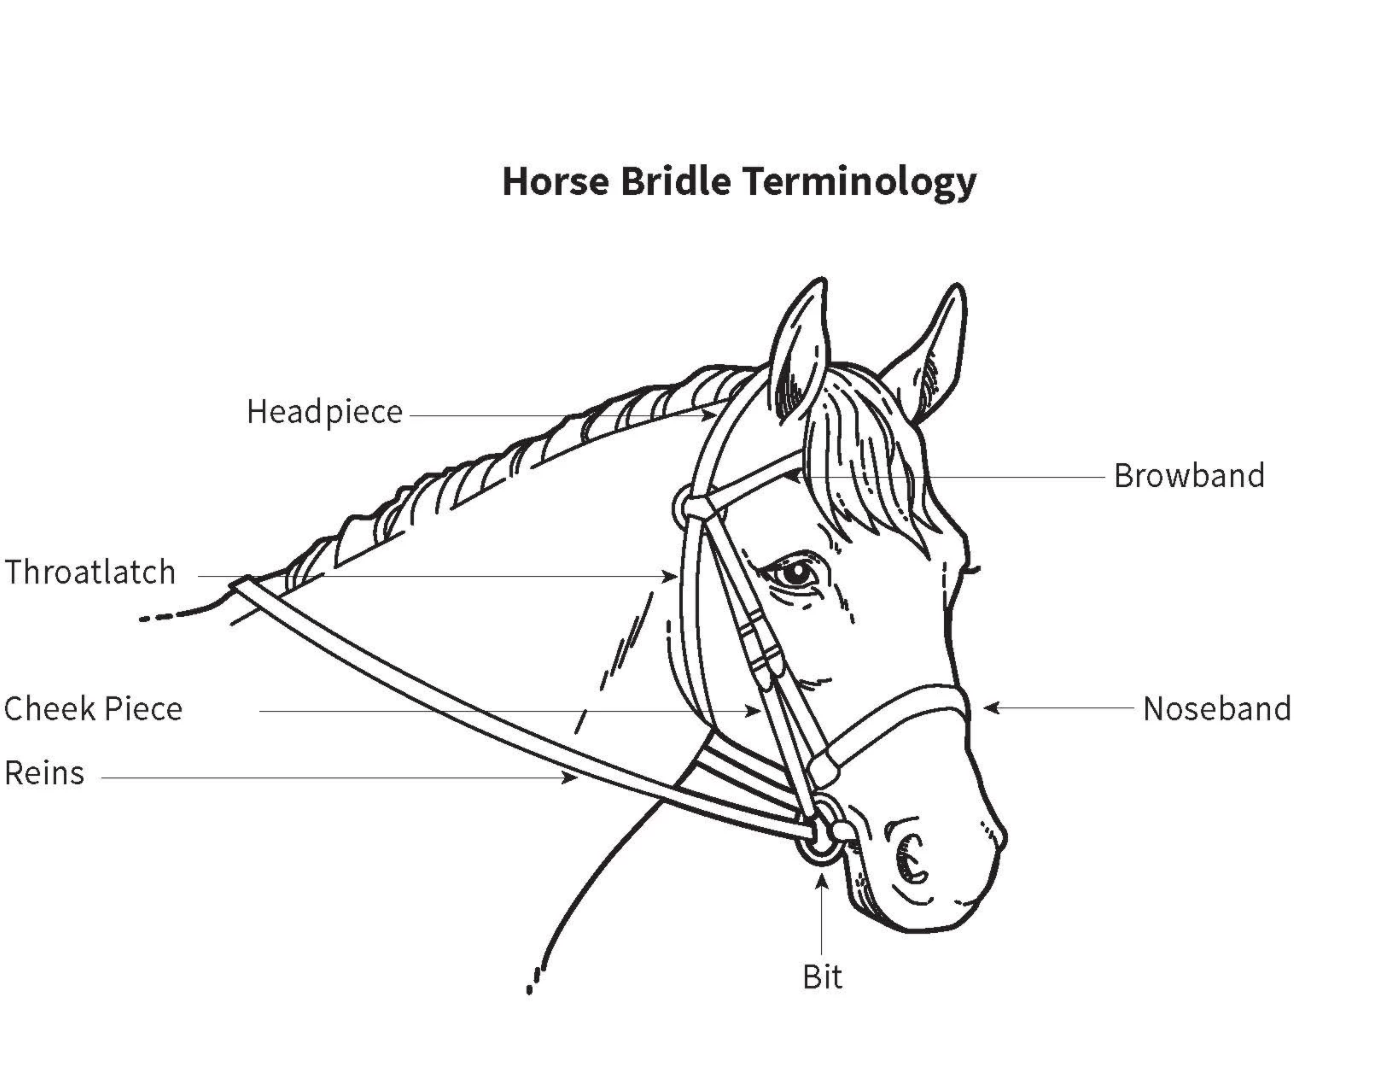 34 Parts Of The Horse Diagram